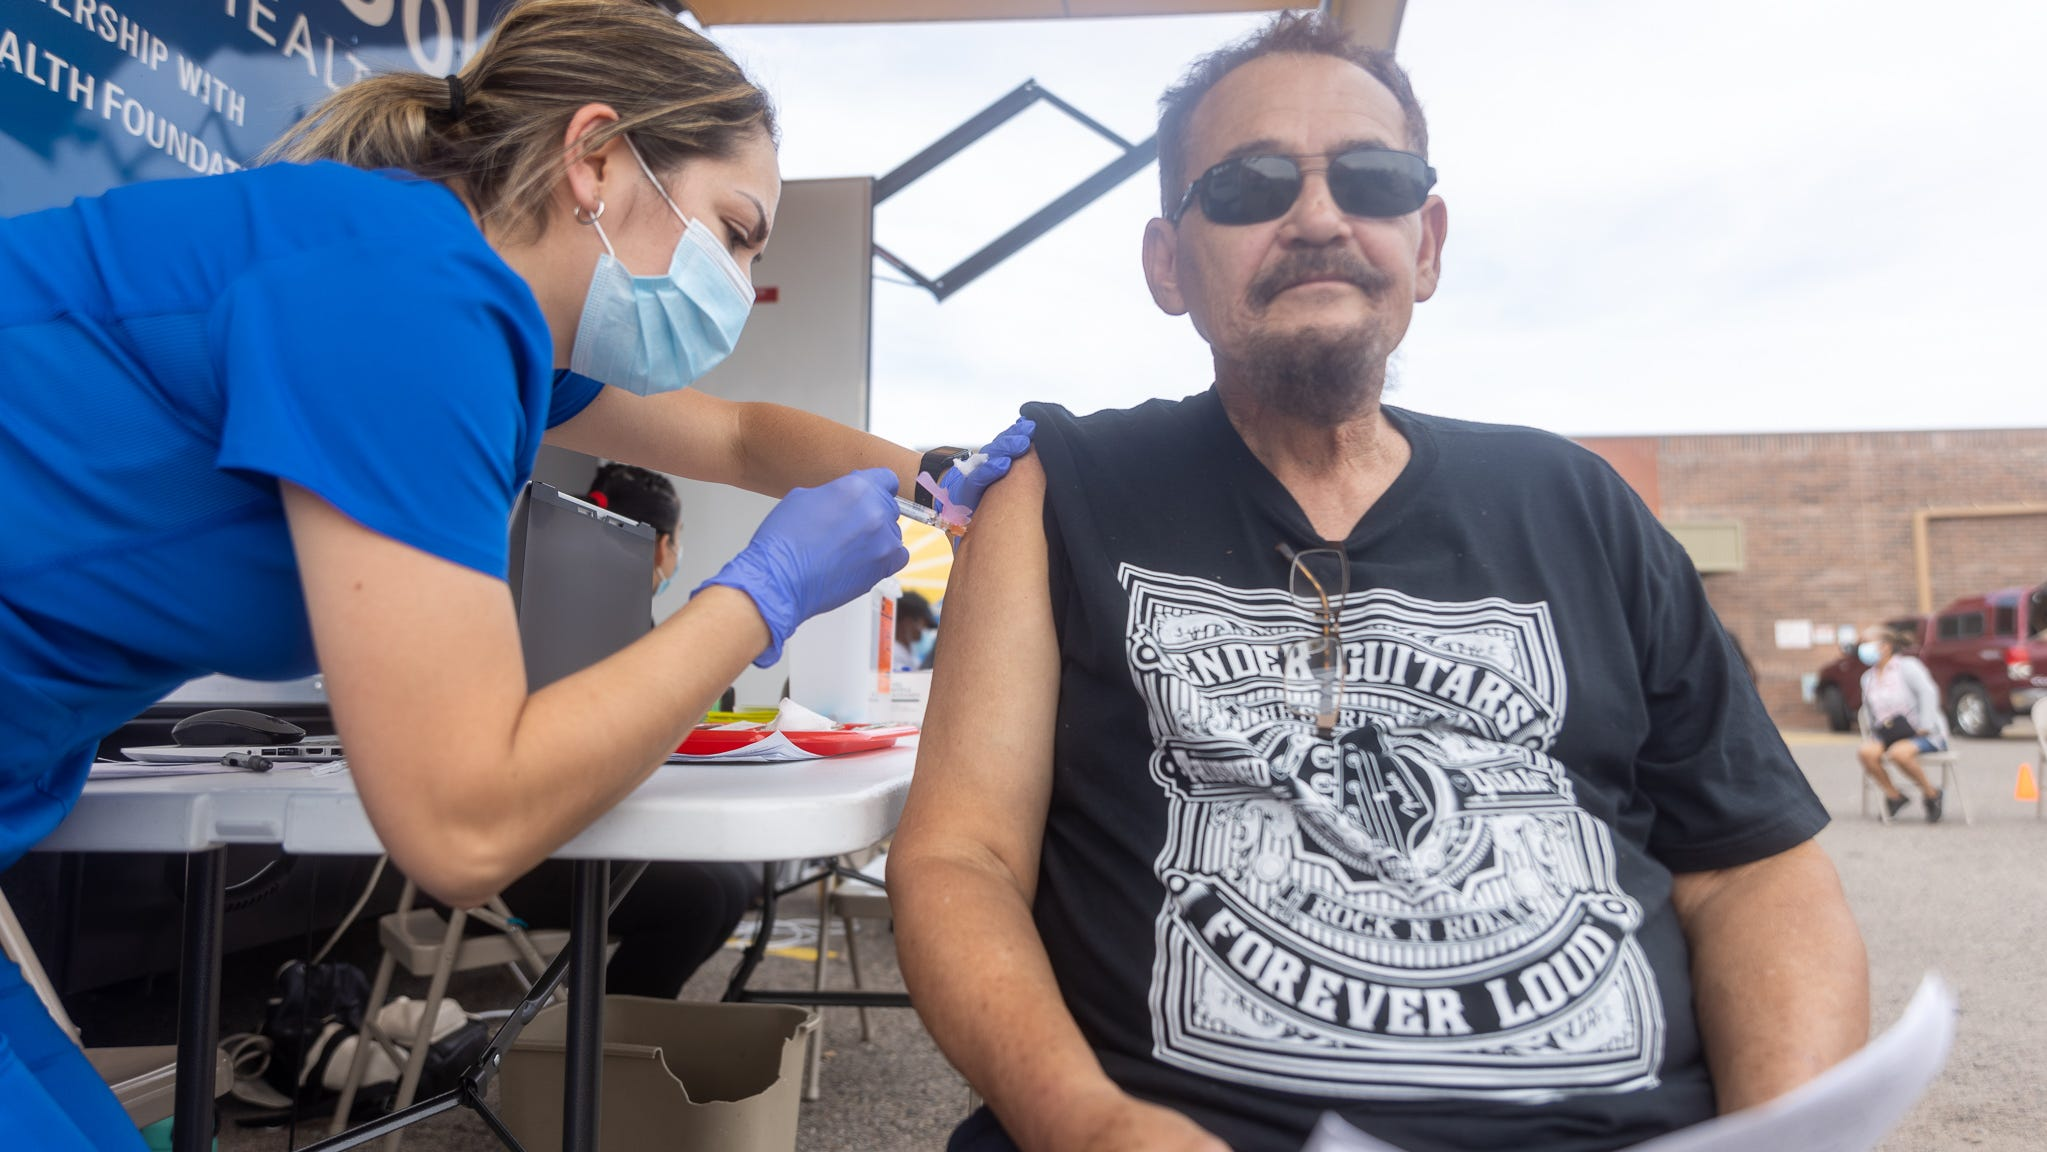 The vaccination event and health fair took place at the Chicanos Por La Causa office in Maryvale from Oct. 7 through Oct. 9.